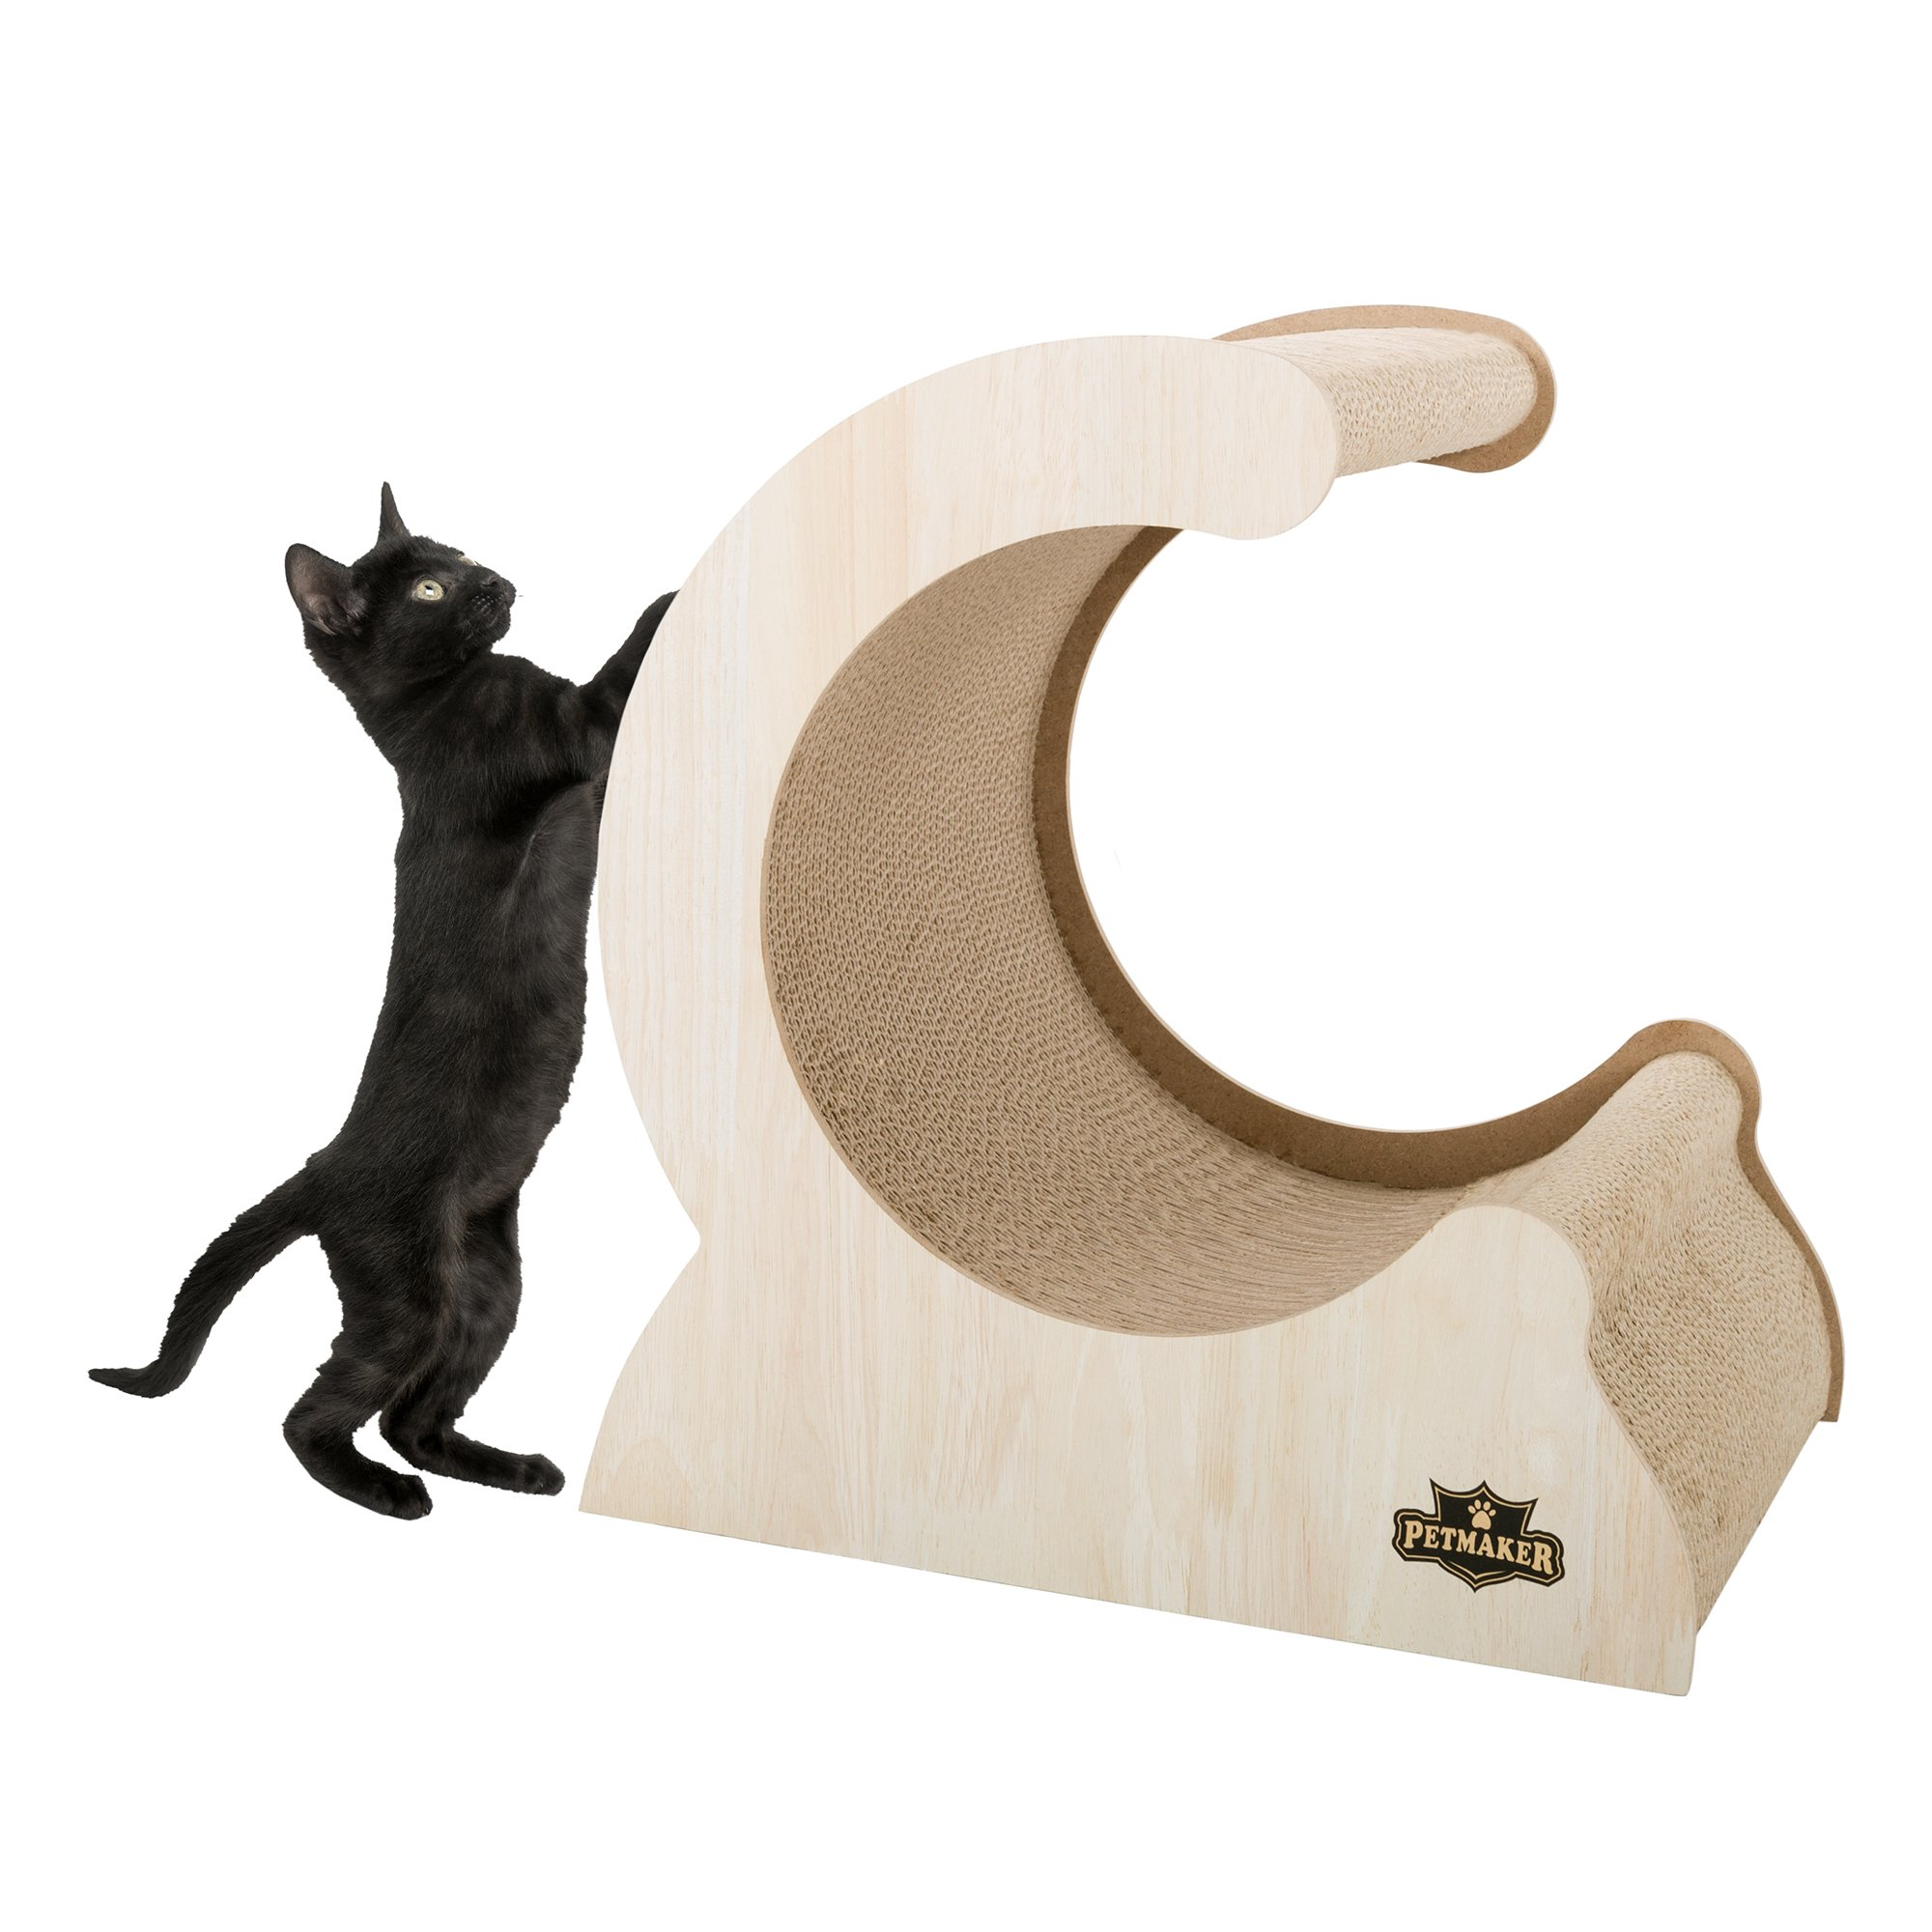 Cat Scratching Post- Wood and Cardboard Incline Vertical Scratcher Station for Kittens and Large Cats, Furniture Scratch Deterrent by PETMAKER by PETMAKER